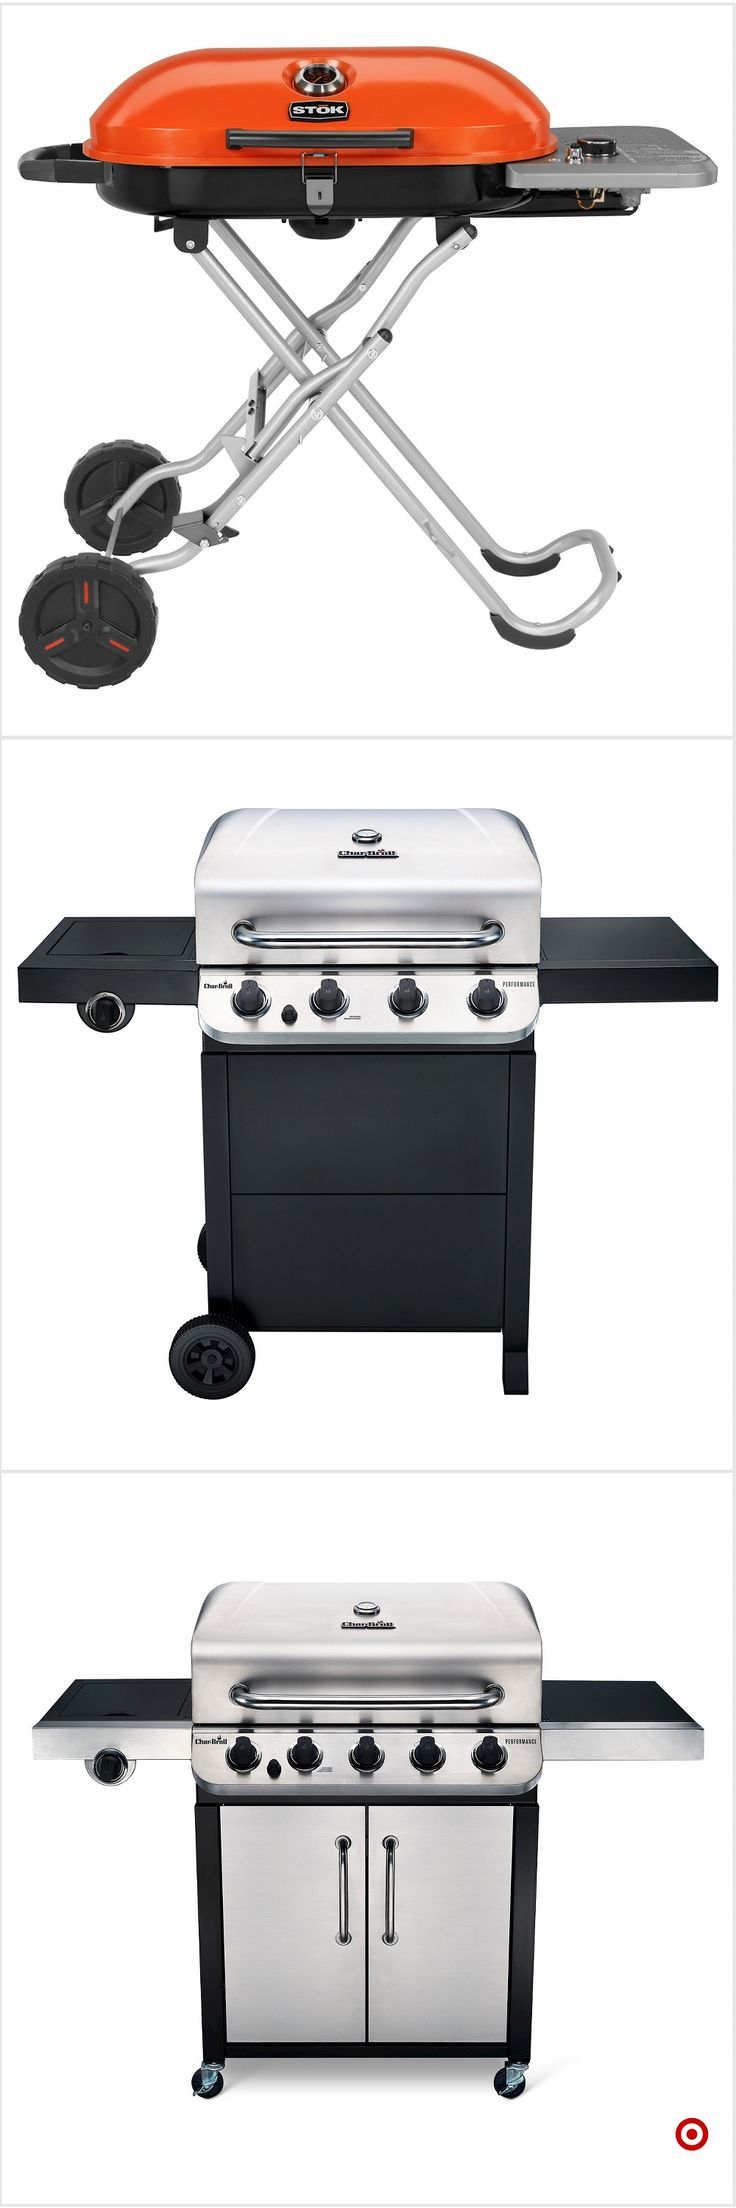 Shop Target for gas grill you will love at great low prices. Free shipping on all orders or free same-day pick-up in store.